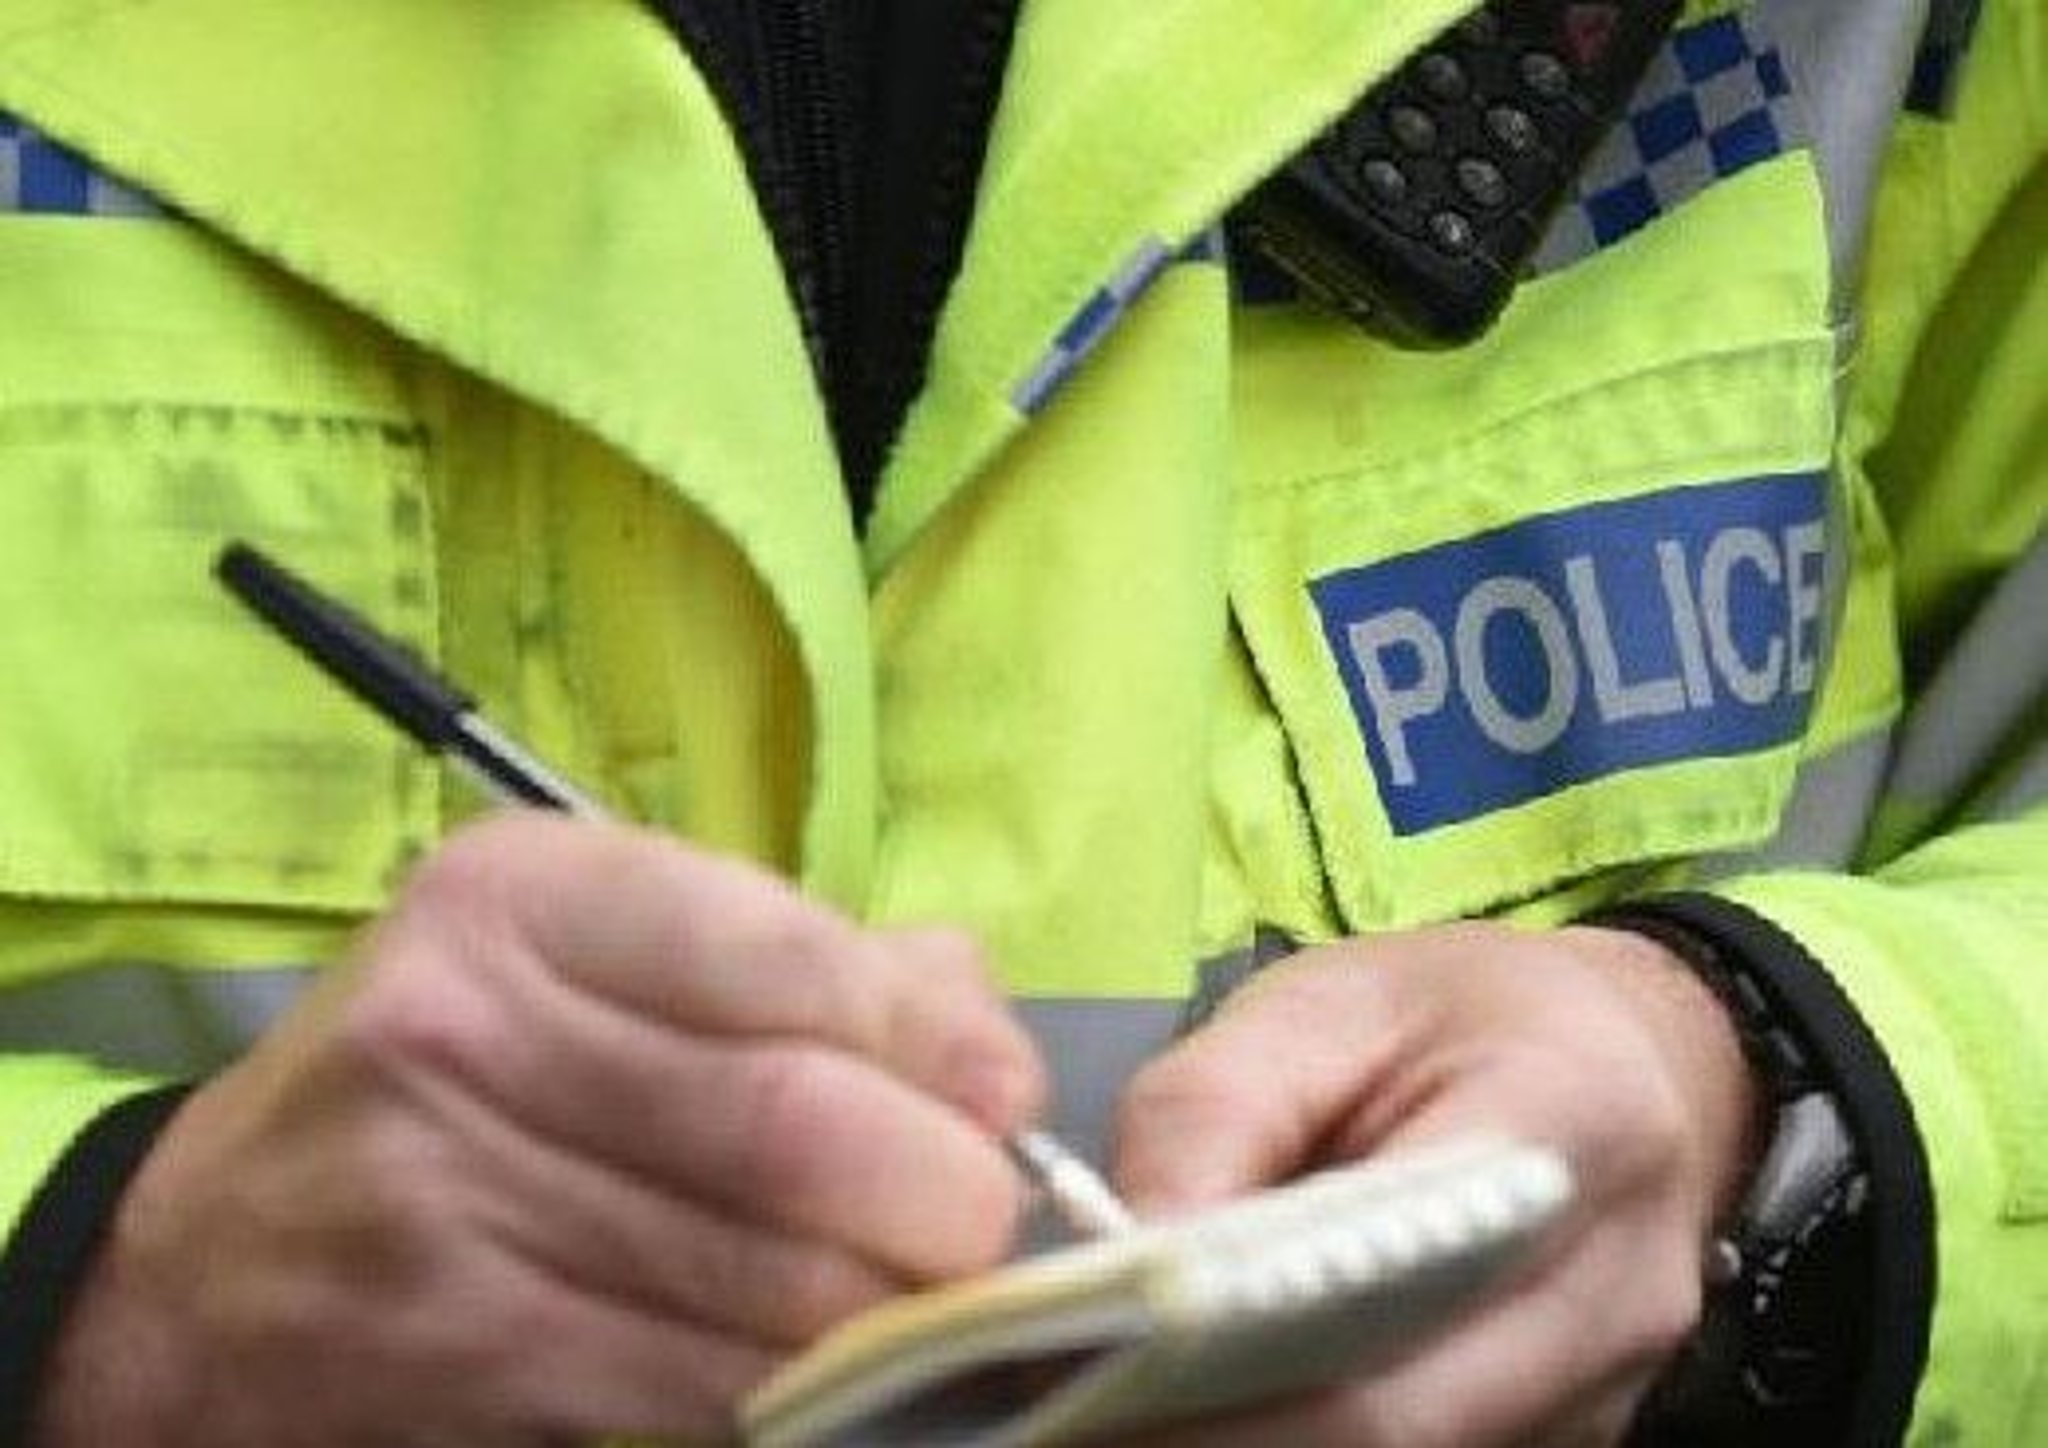 Man charged with ABH after suspected assault on female bus